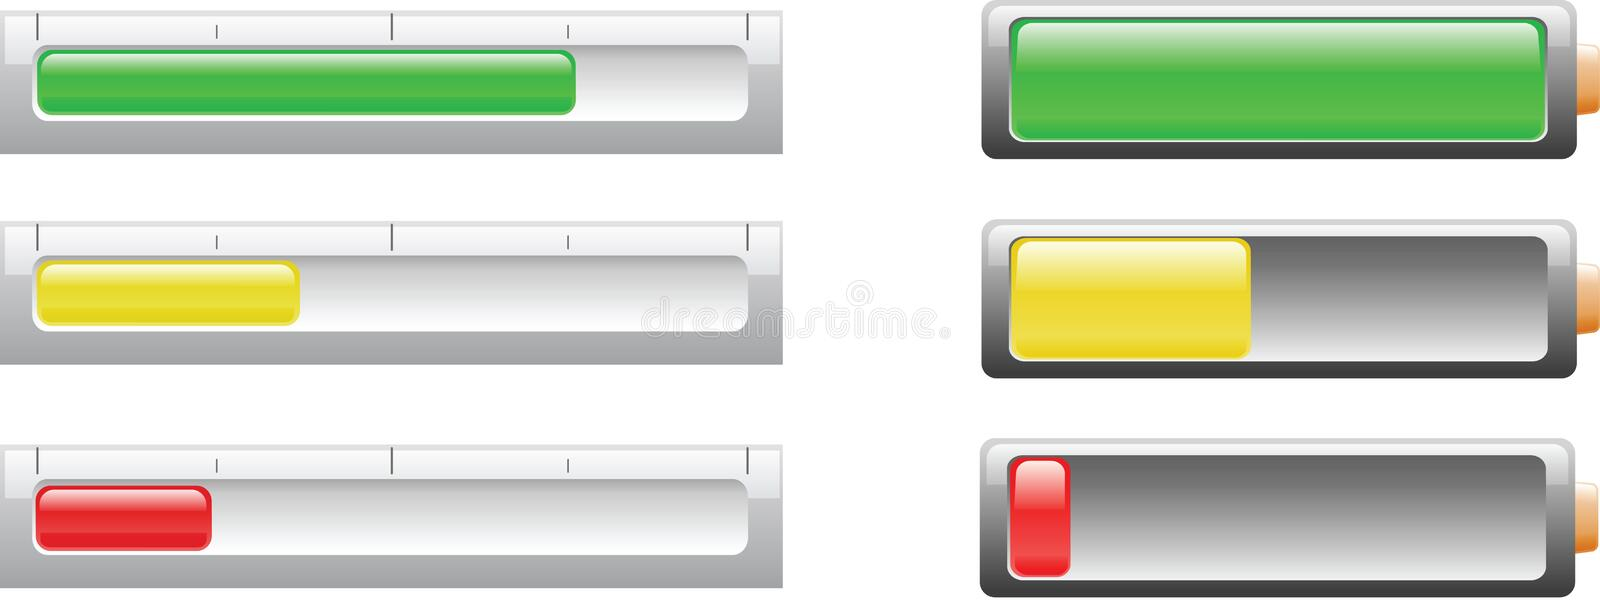 Download Battery Or Power Level Indicicators Stock Illustration - Illustration: 9102806